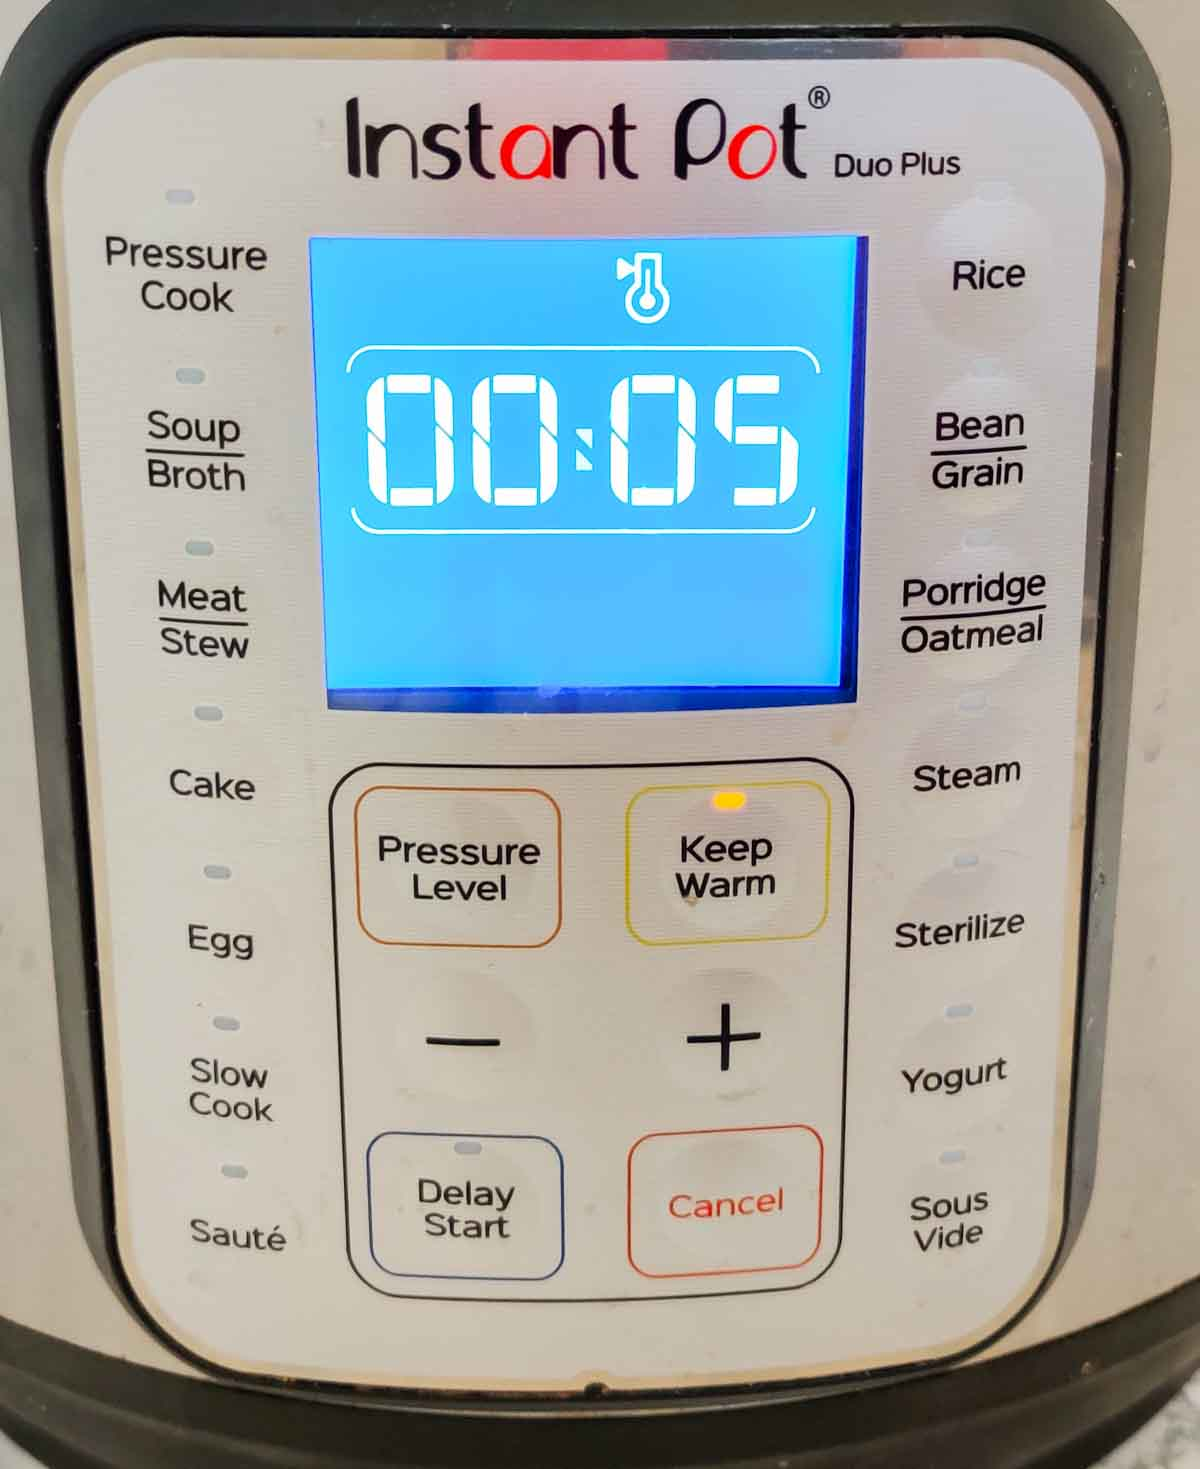 Display panel of an Instant Pot in Keep Warm mode